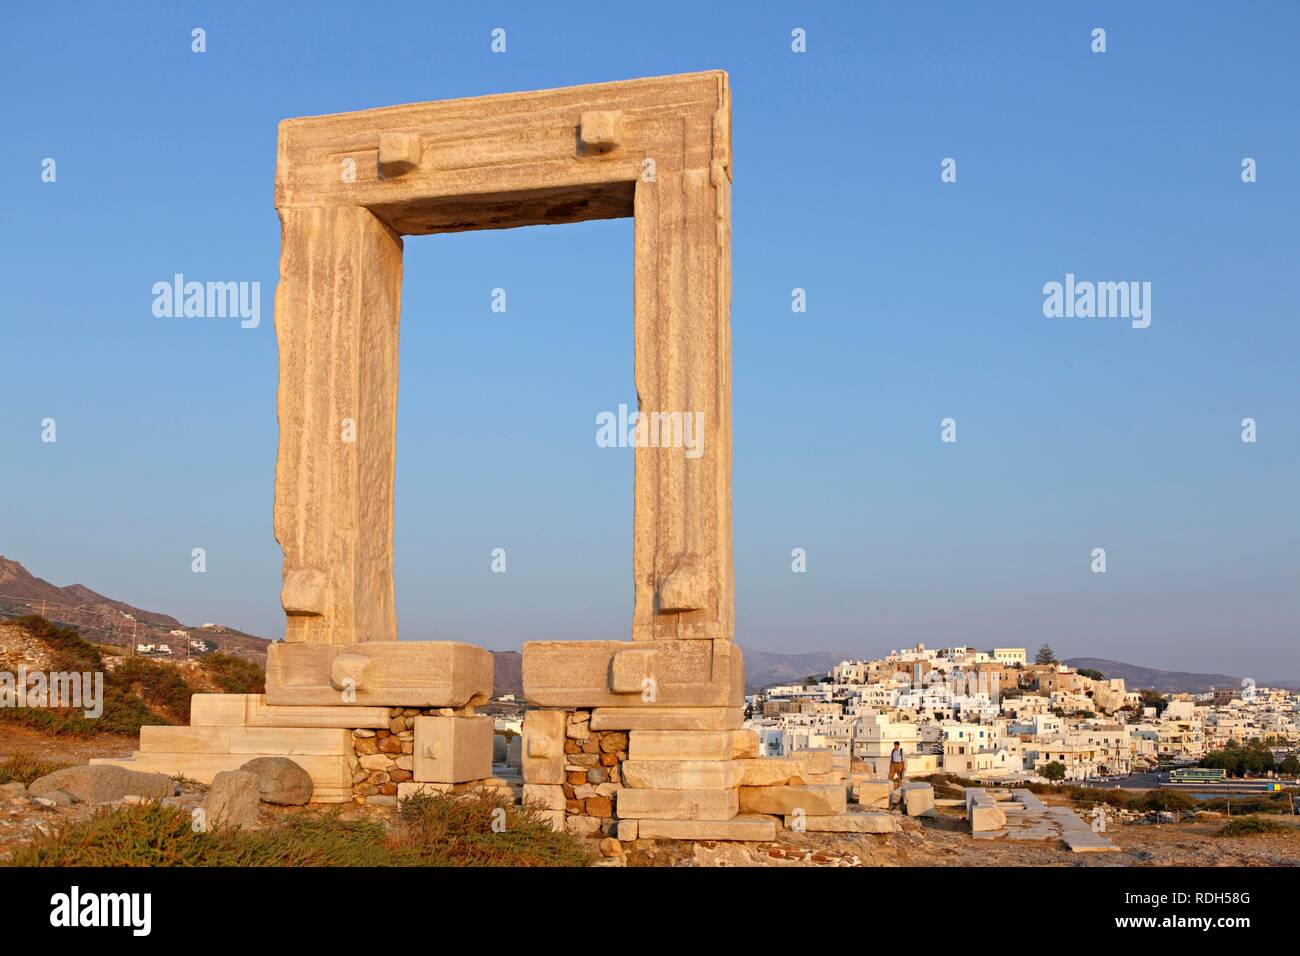 Portara or gate of the Temple of Apollo, Naxos town, Naxos island, Cyclades, Aegean Sea, Greece, Europe - Stock Image